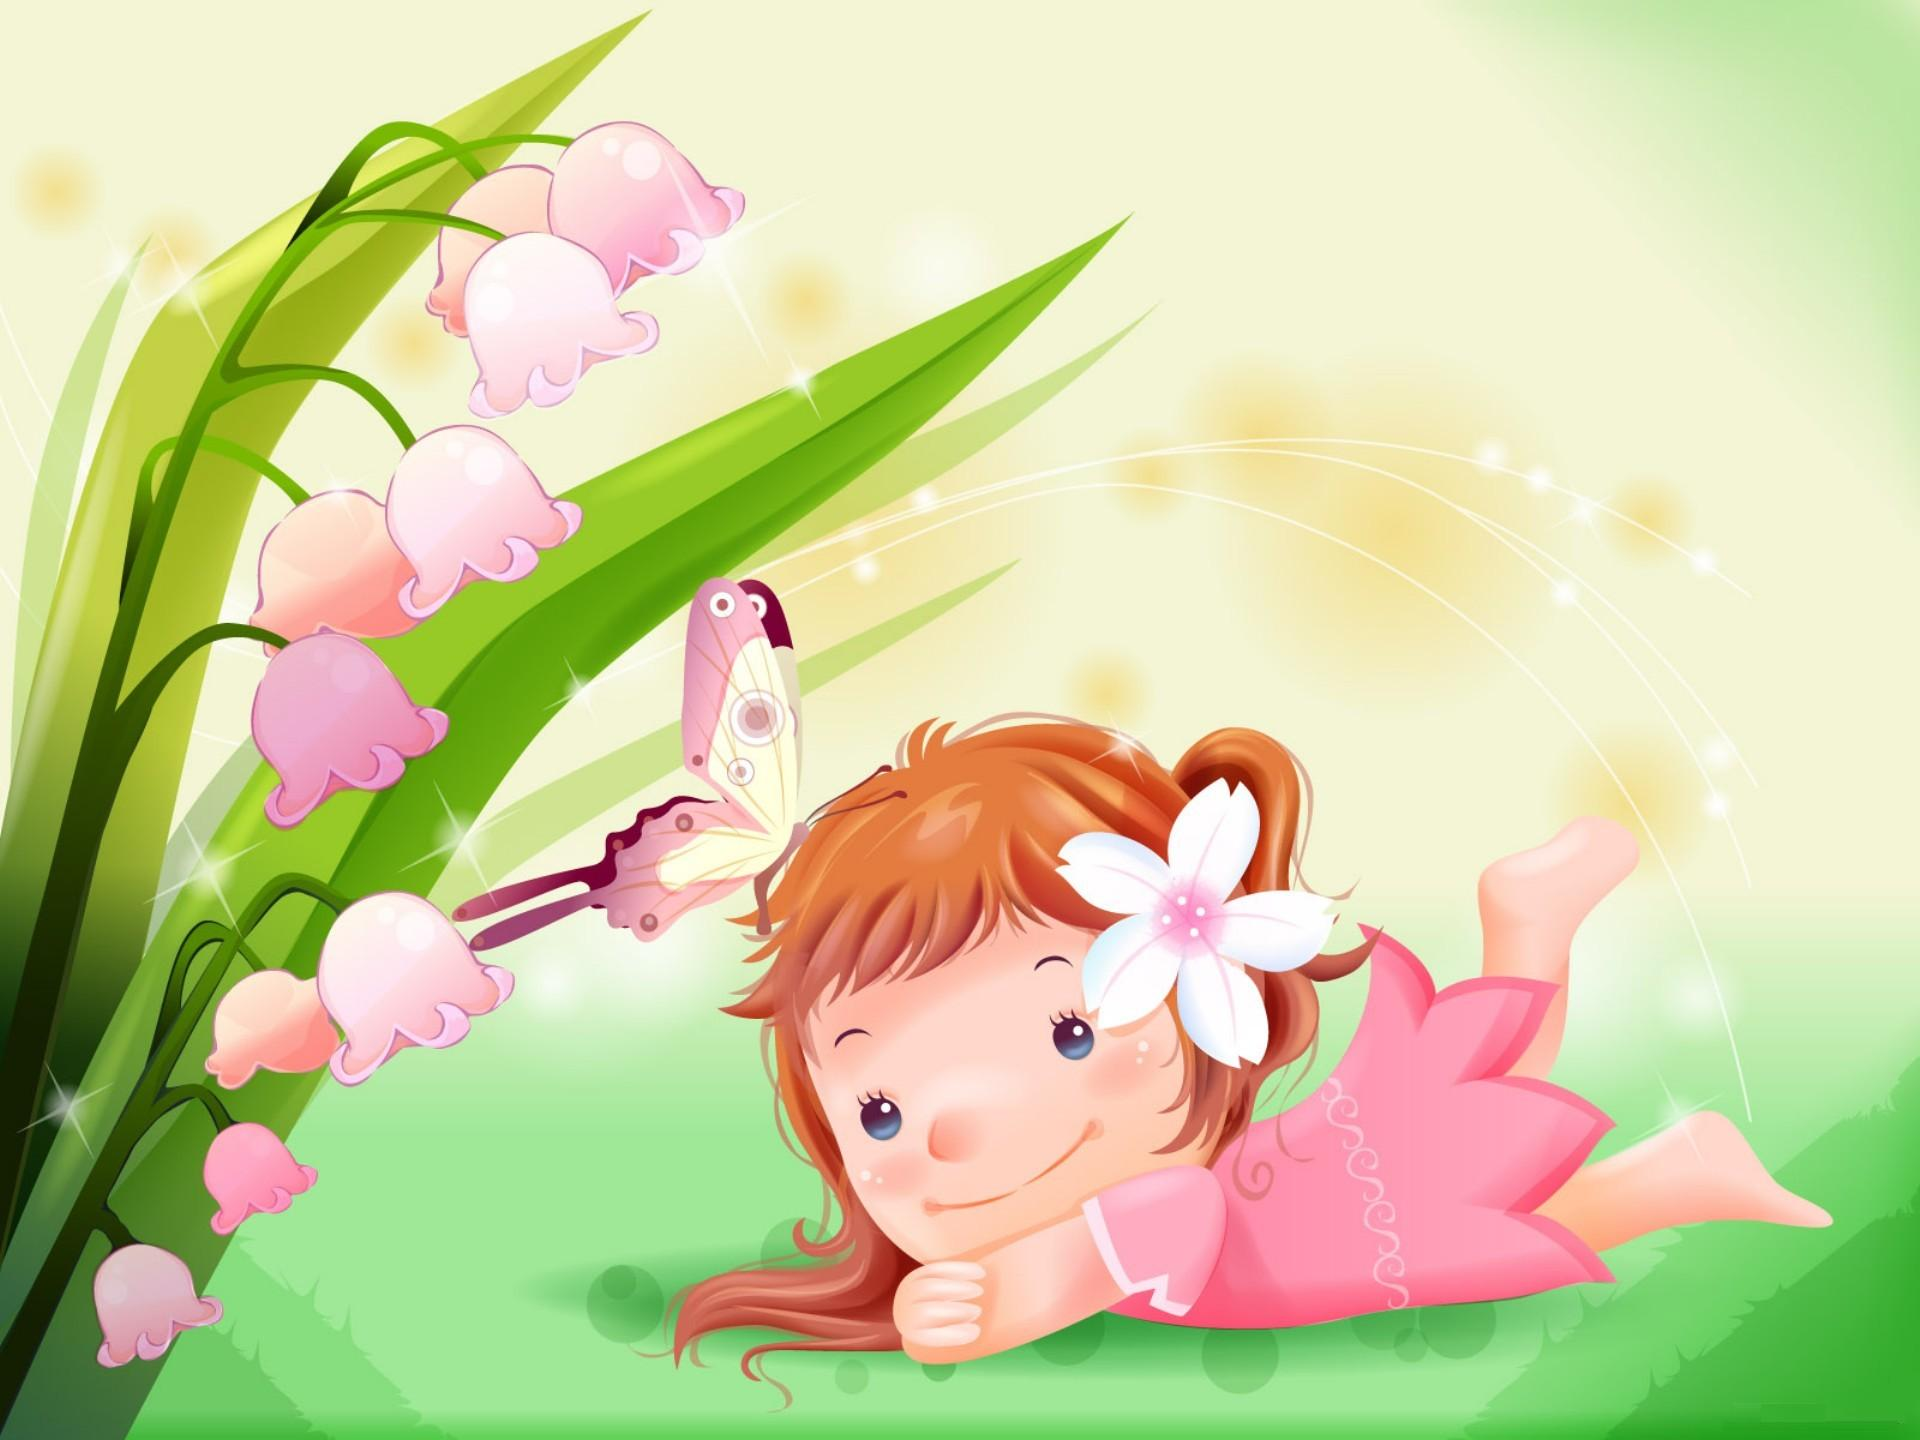 Cute cartoon wallpaper